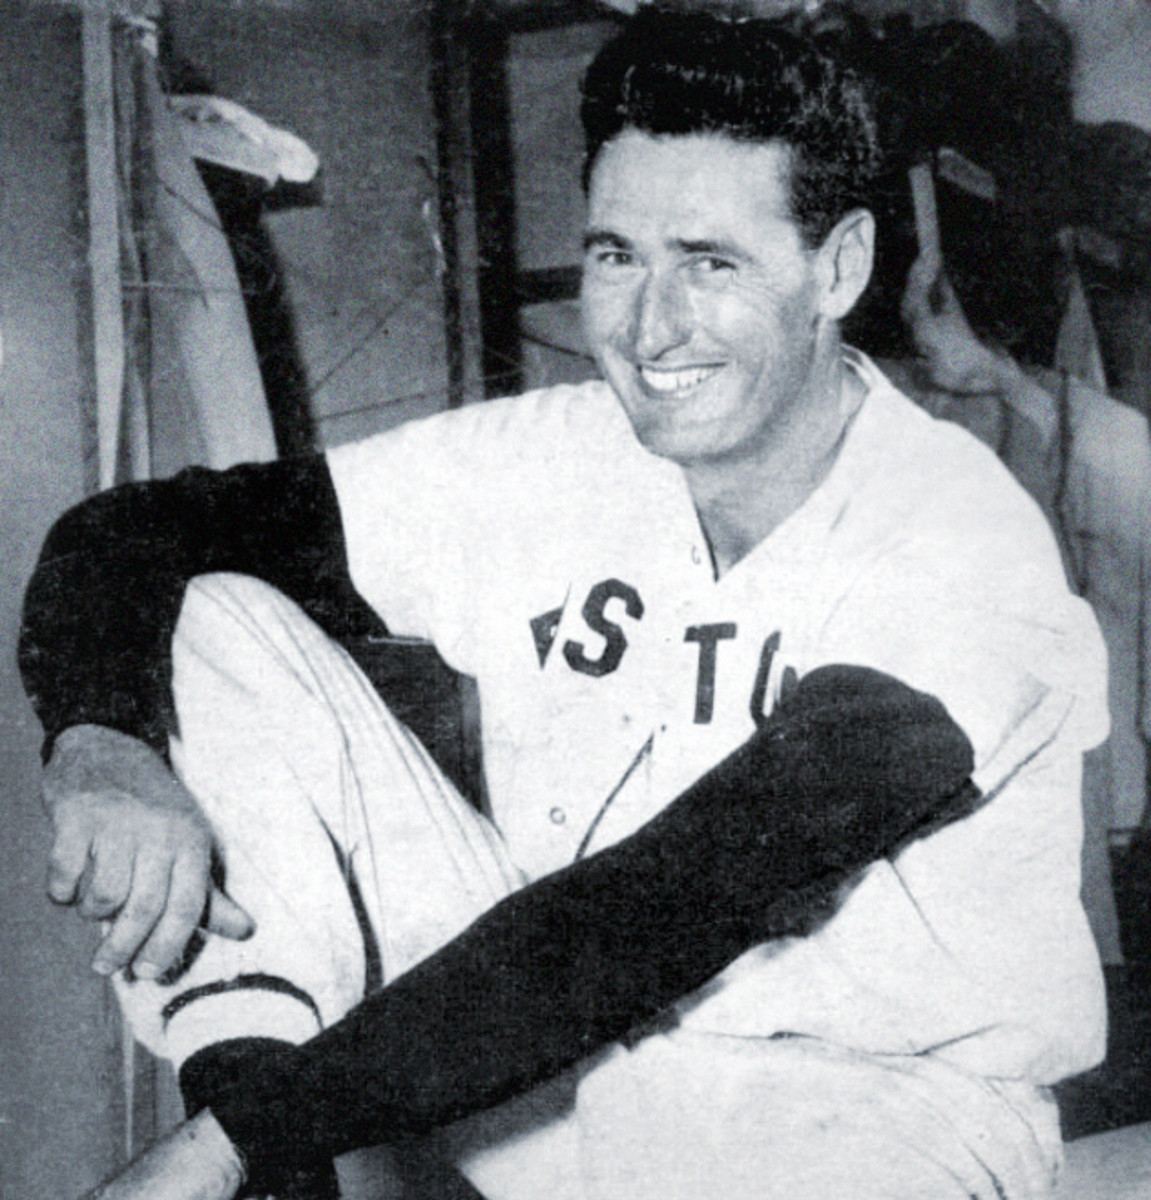 Despite playing just 43 total games between 1952 and '53, Ted Williams was still one of the best home run hitters throughout the 1950s.